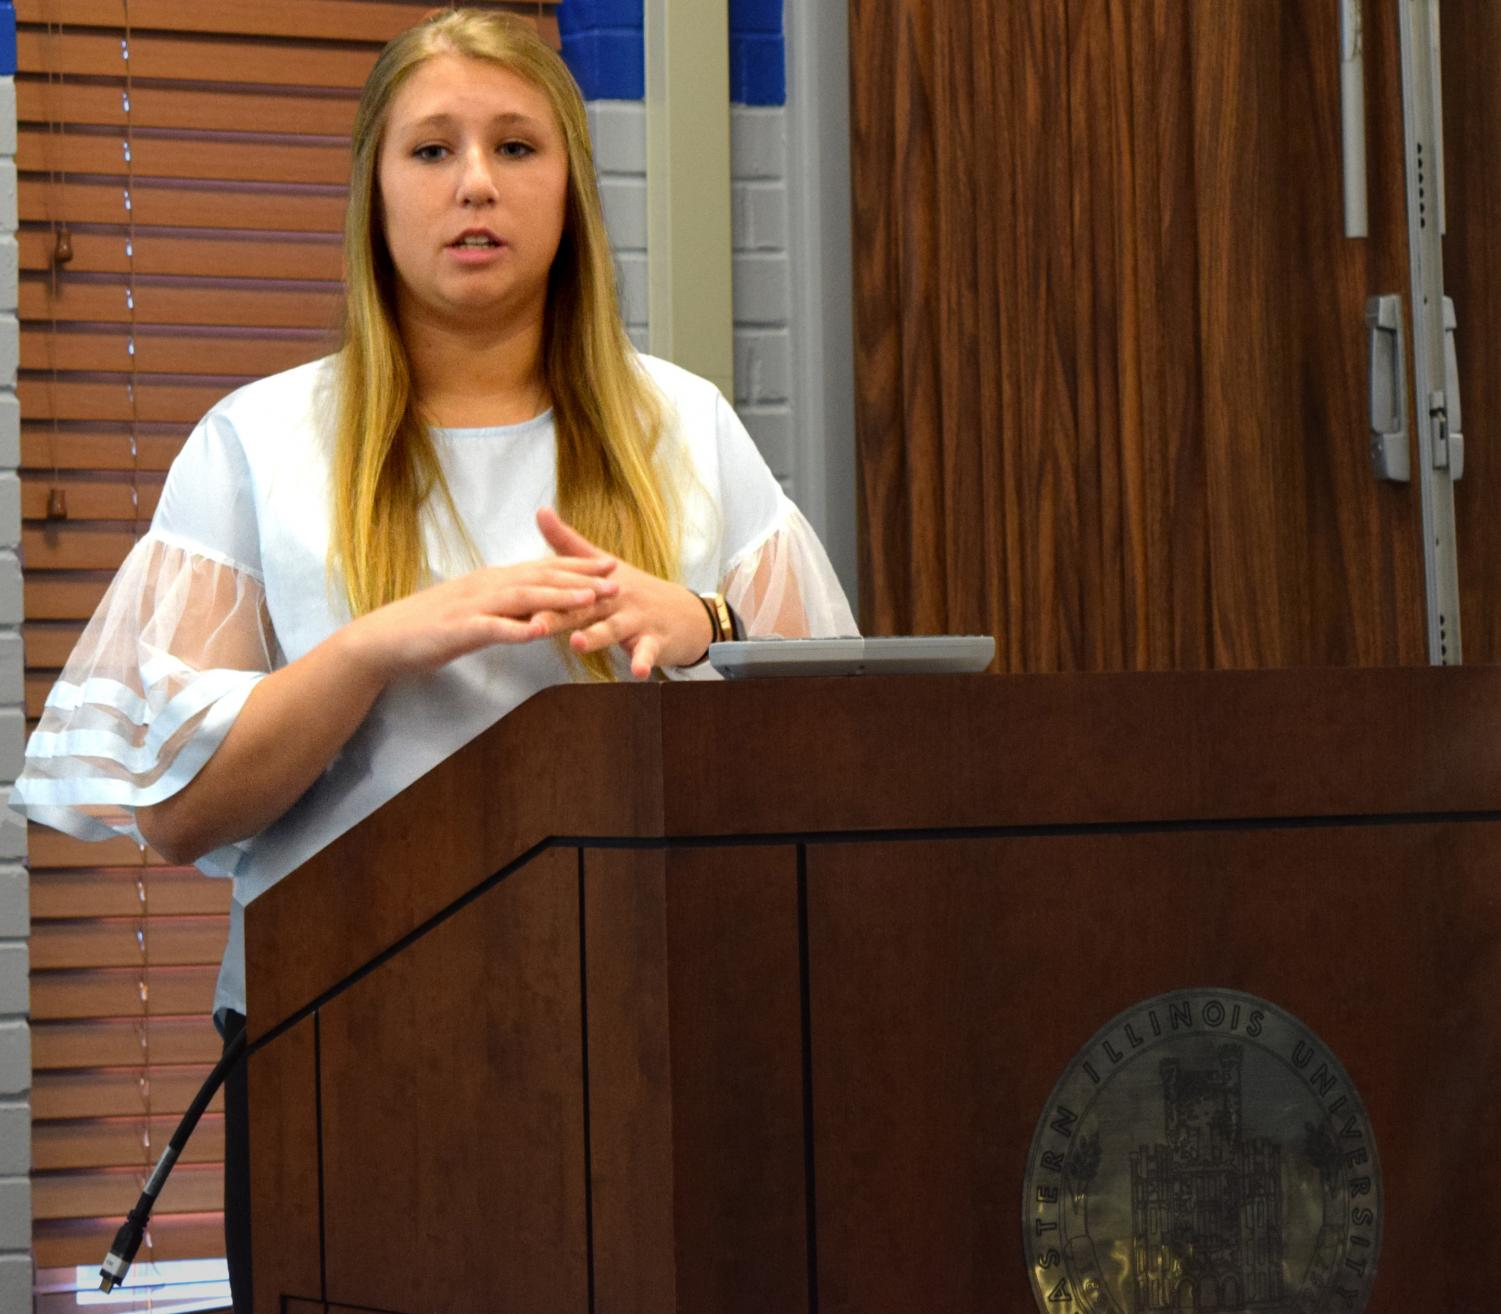 Rebecca Cash, a junior public relations major and the current student vice president for academic affairs, speaks at the Student Senate Forum, Thursday evening in the Martin Luther King Jr. University Union. She is running uncontested for student body president.